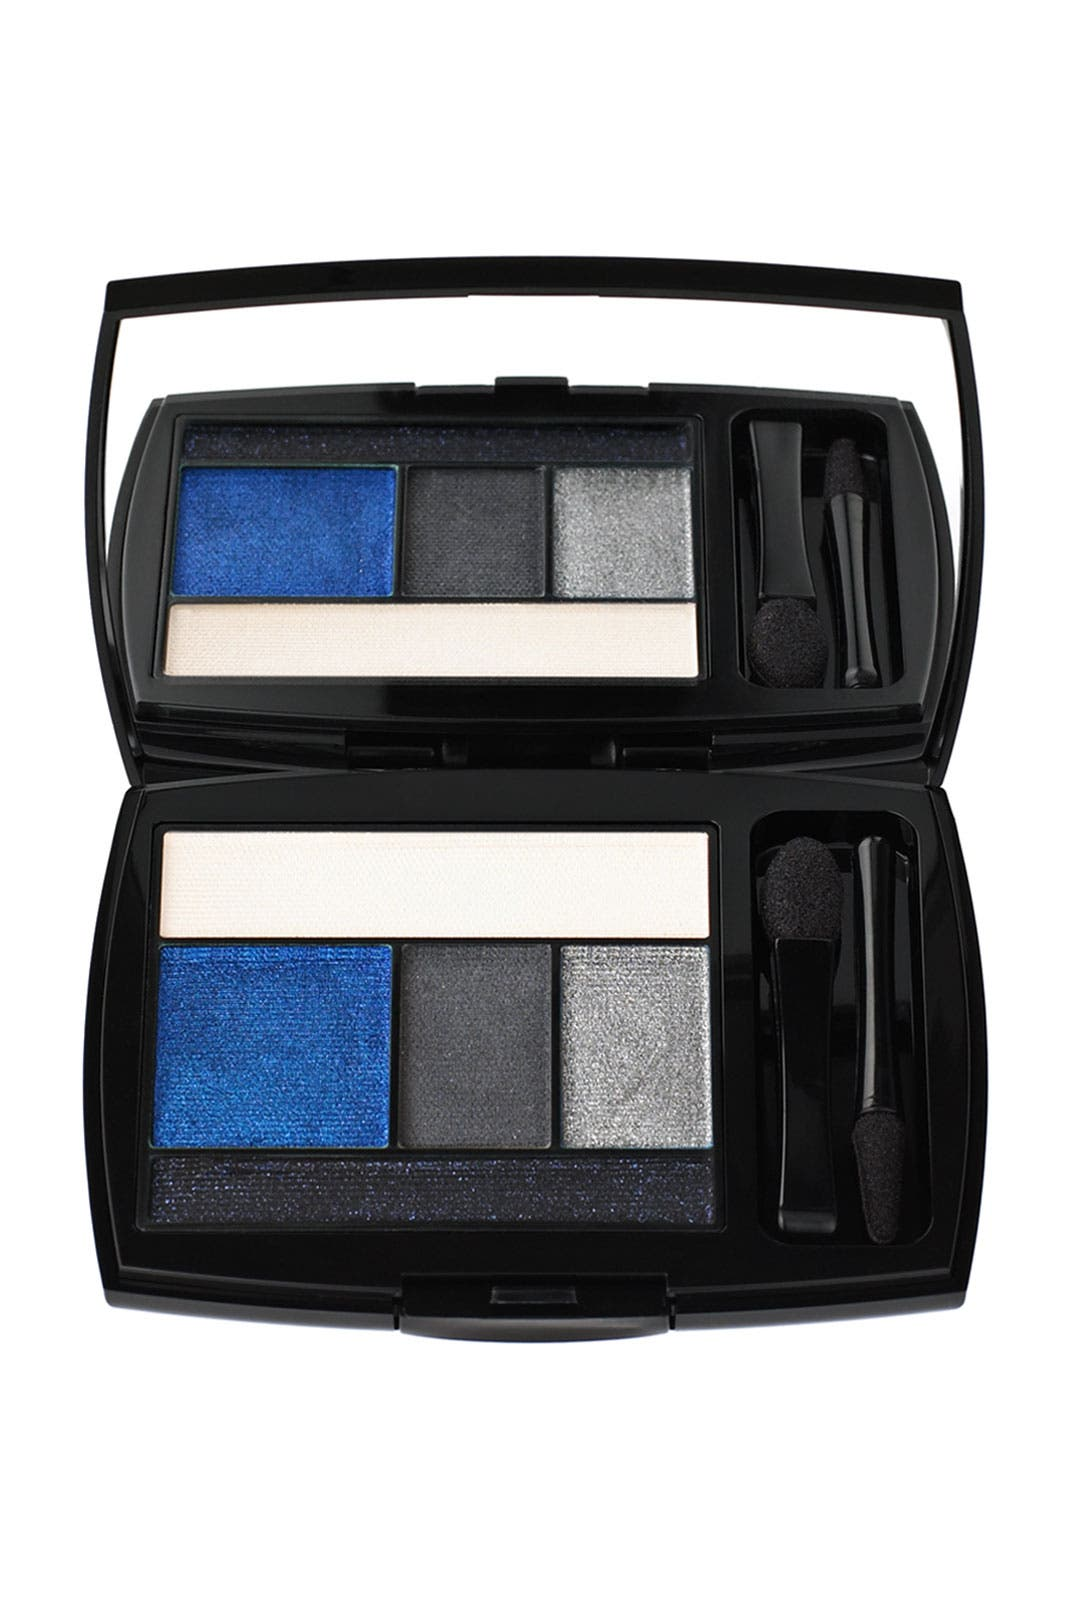 Midnight Rush Color Design 5 Shadow & Liner Palette by LANCÔME